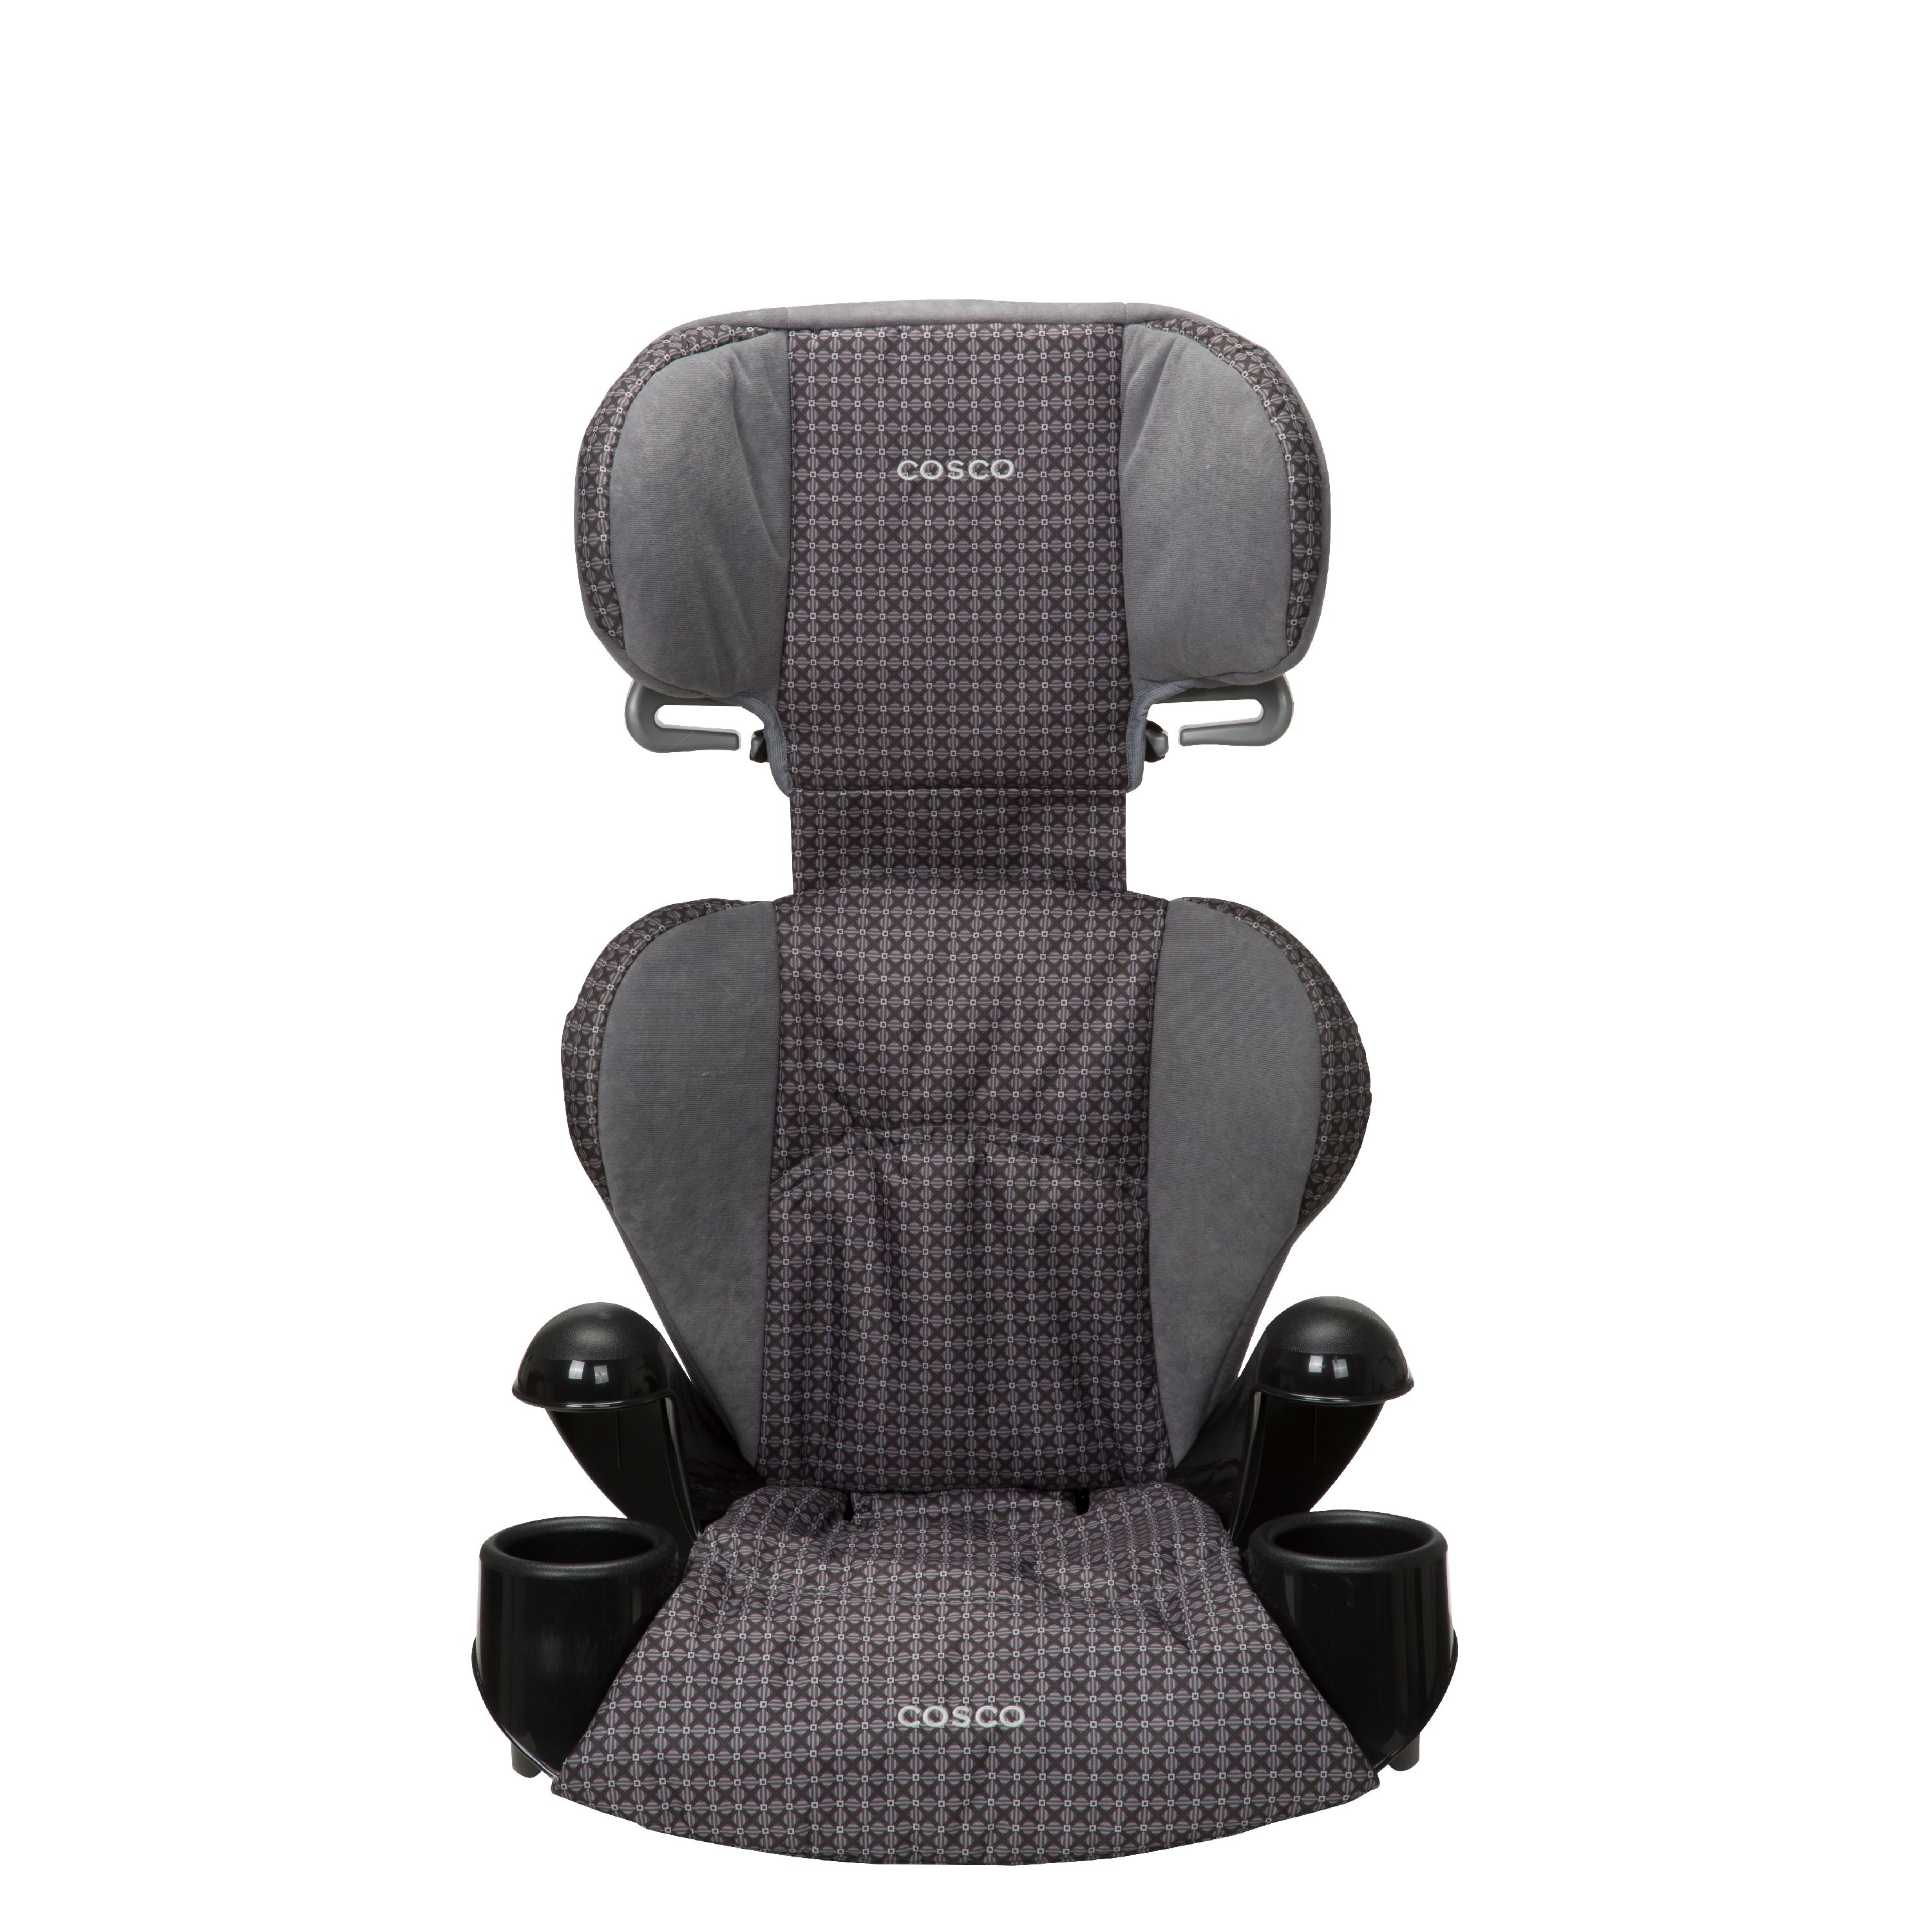 Cosco Rightway Booster Car Seat, Emerson - Walmart.com